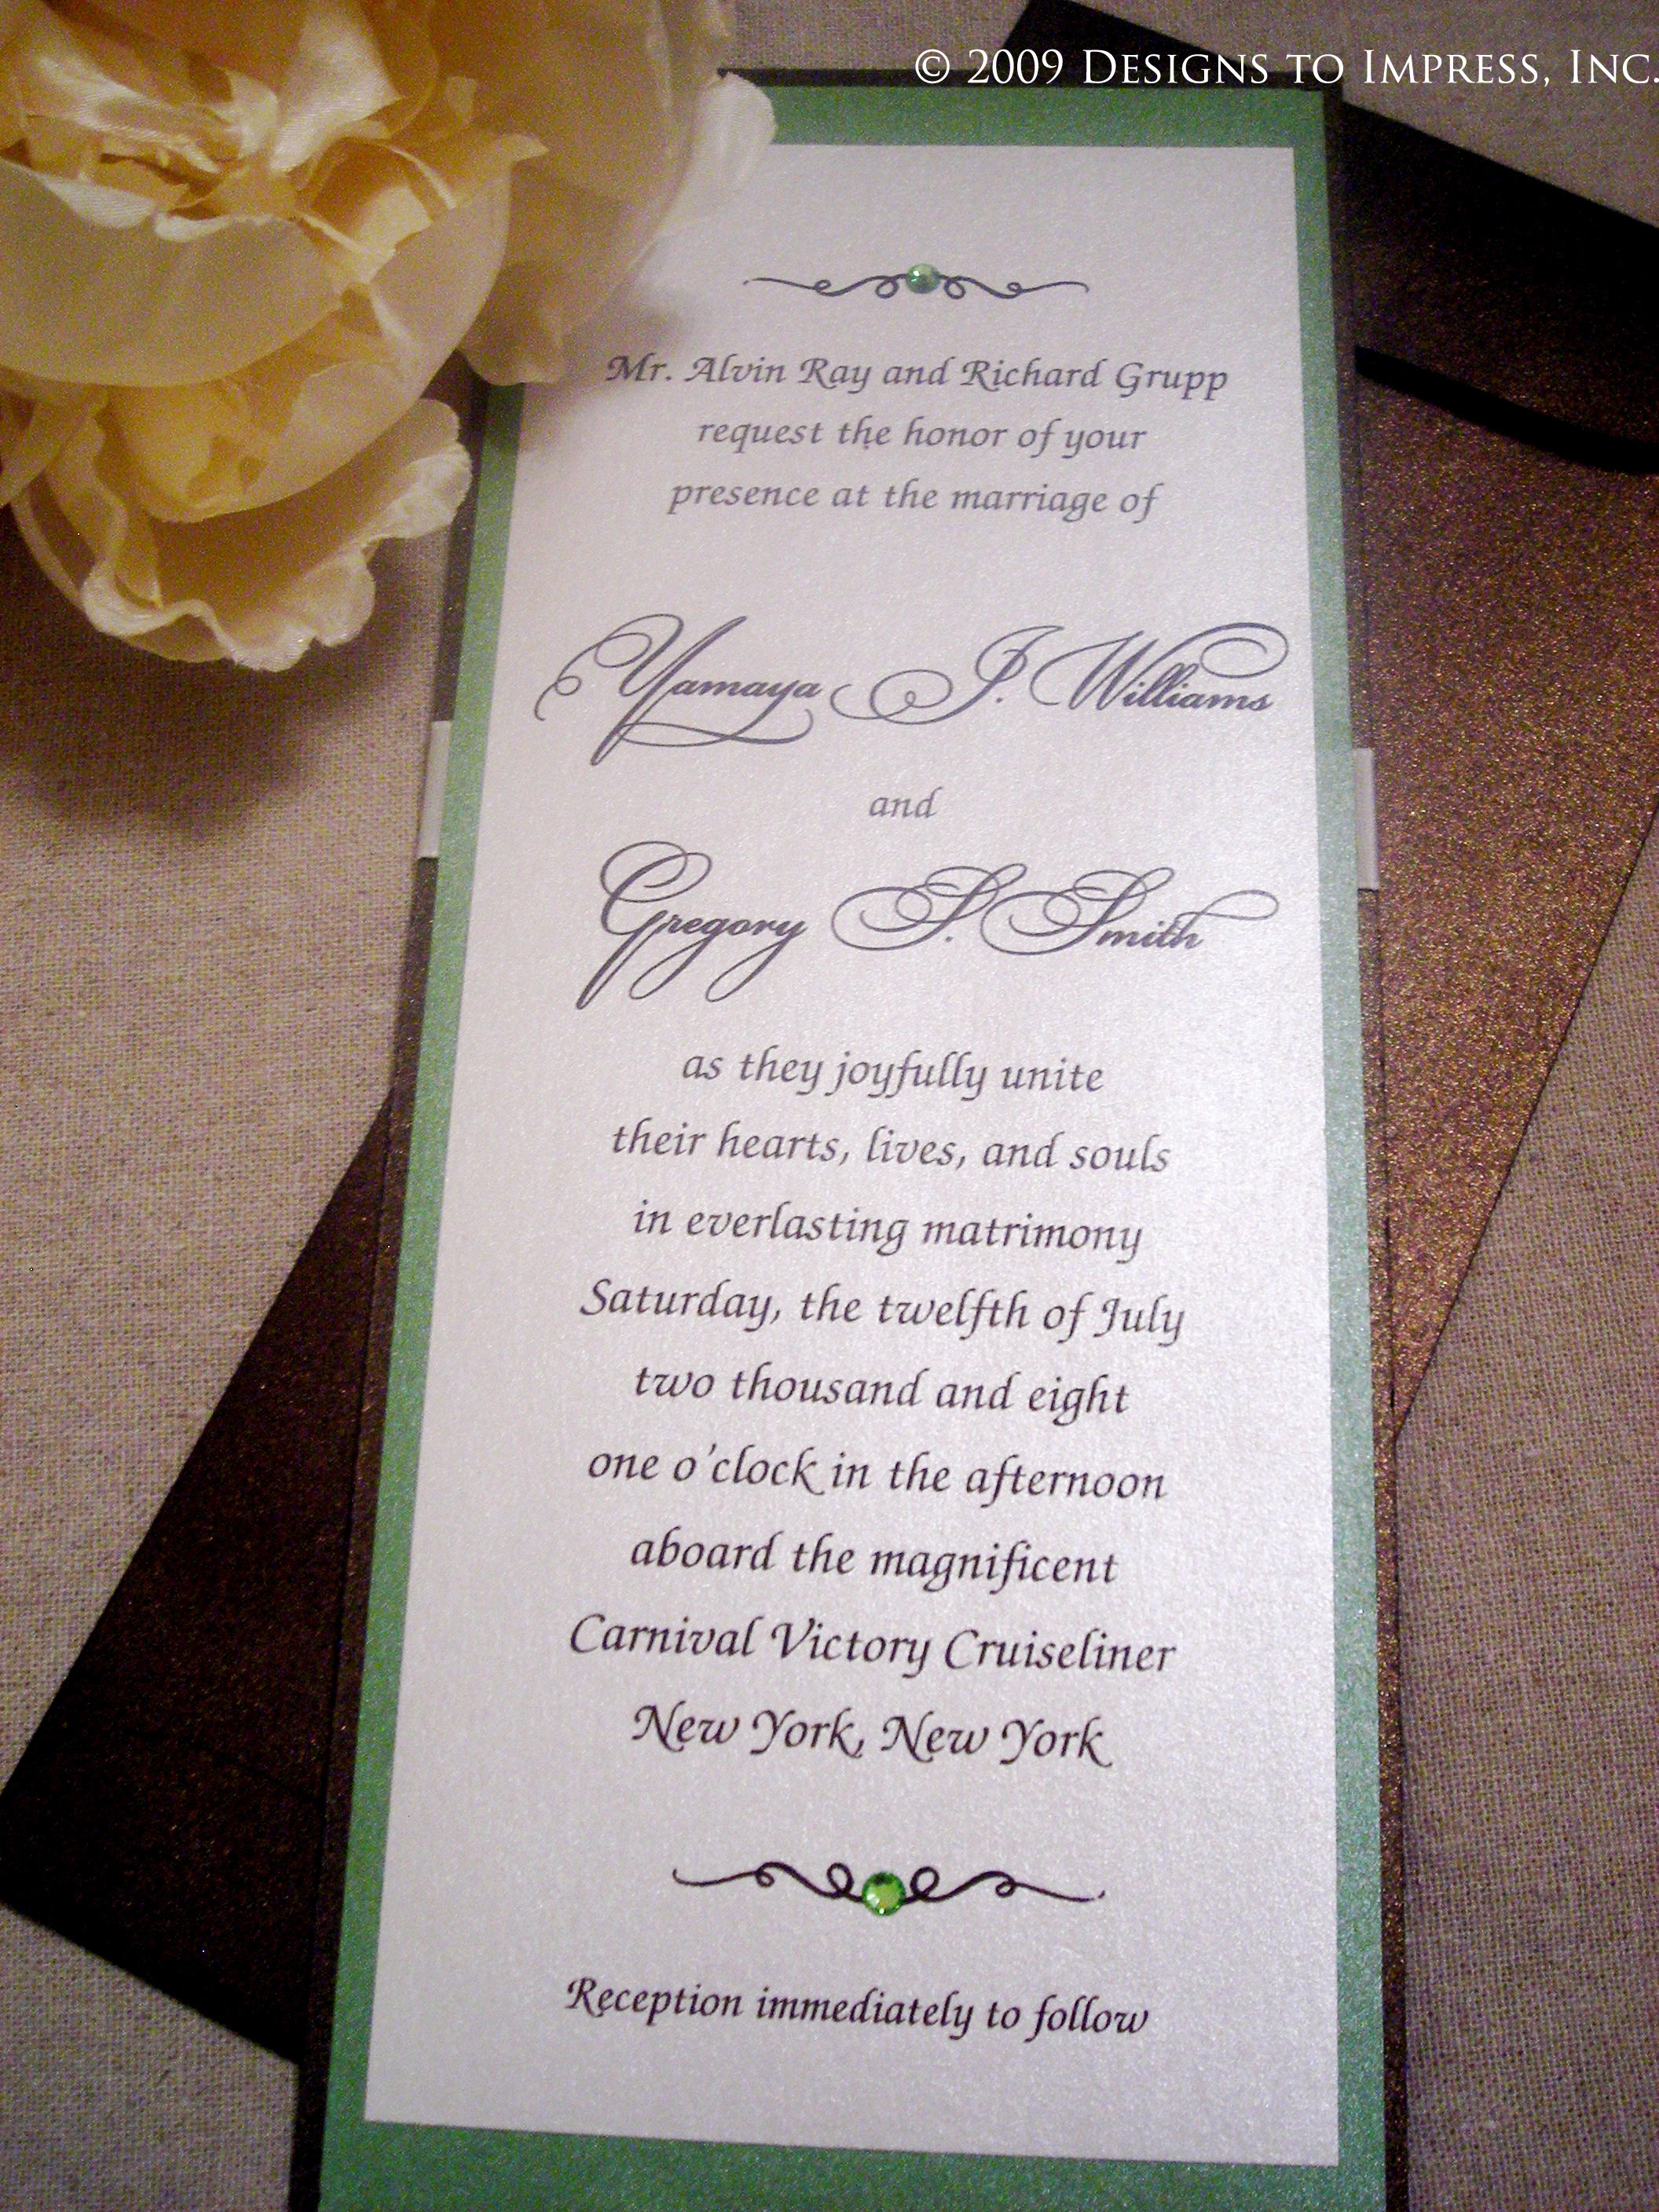 green, Chocolate, inc, Shimmer, Wedding invitations, Designs to impress